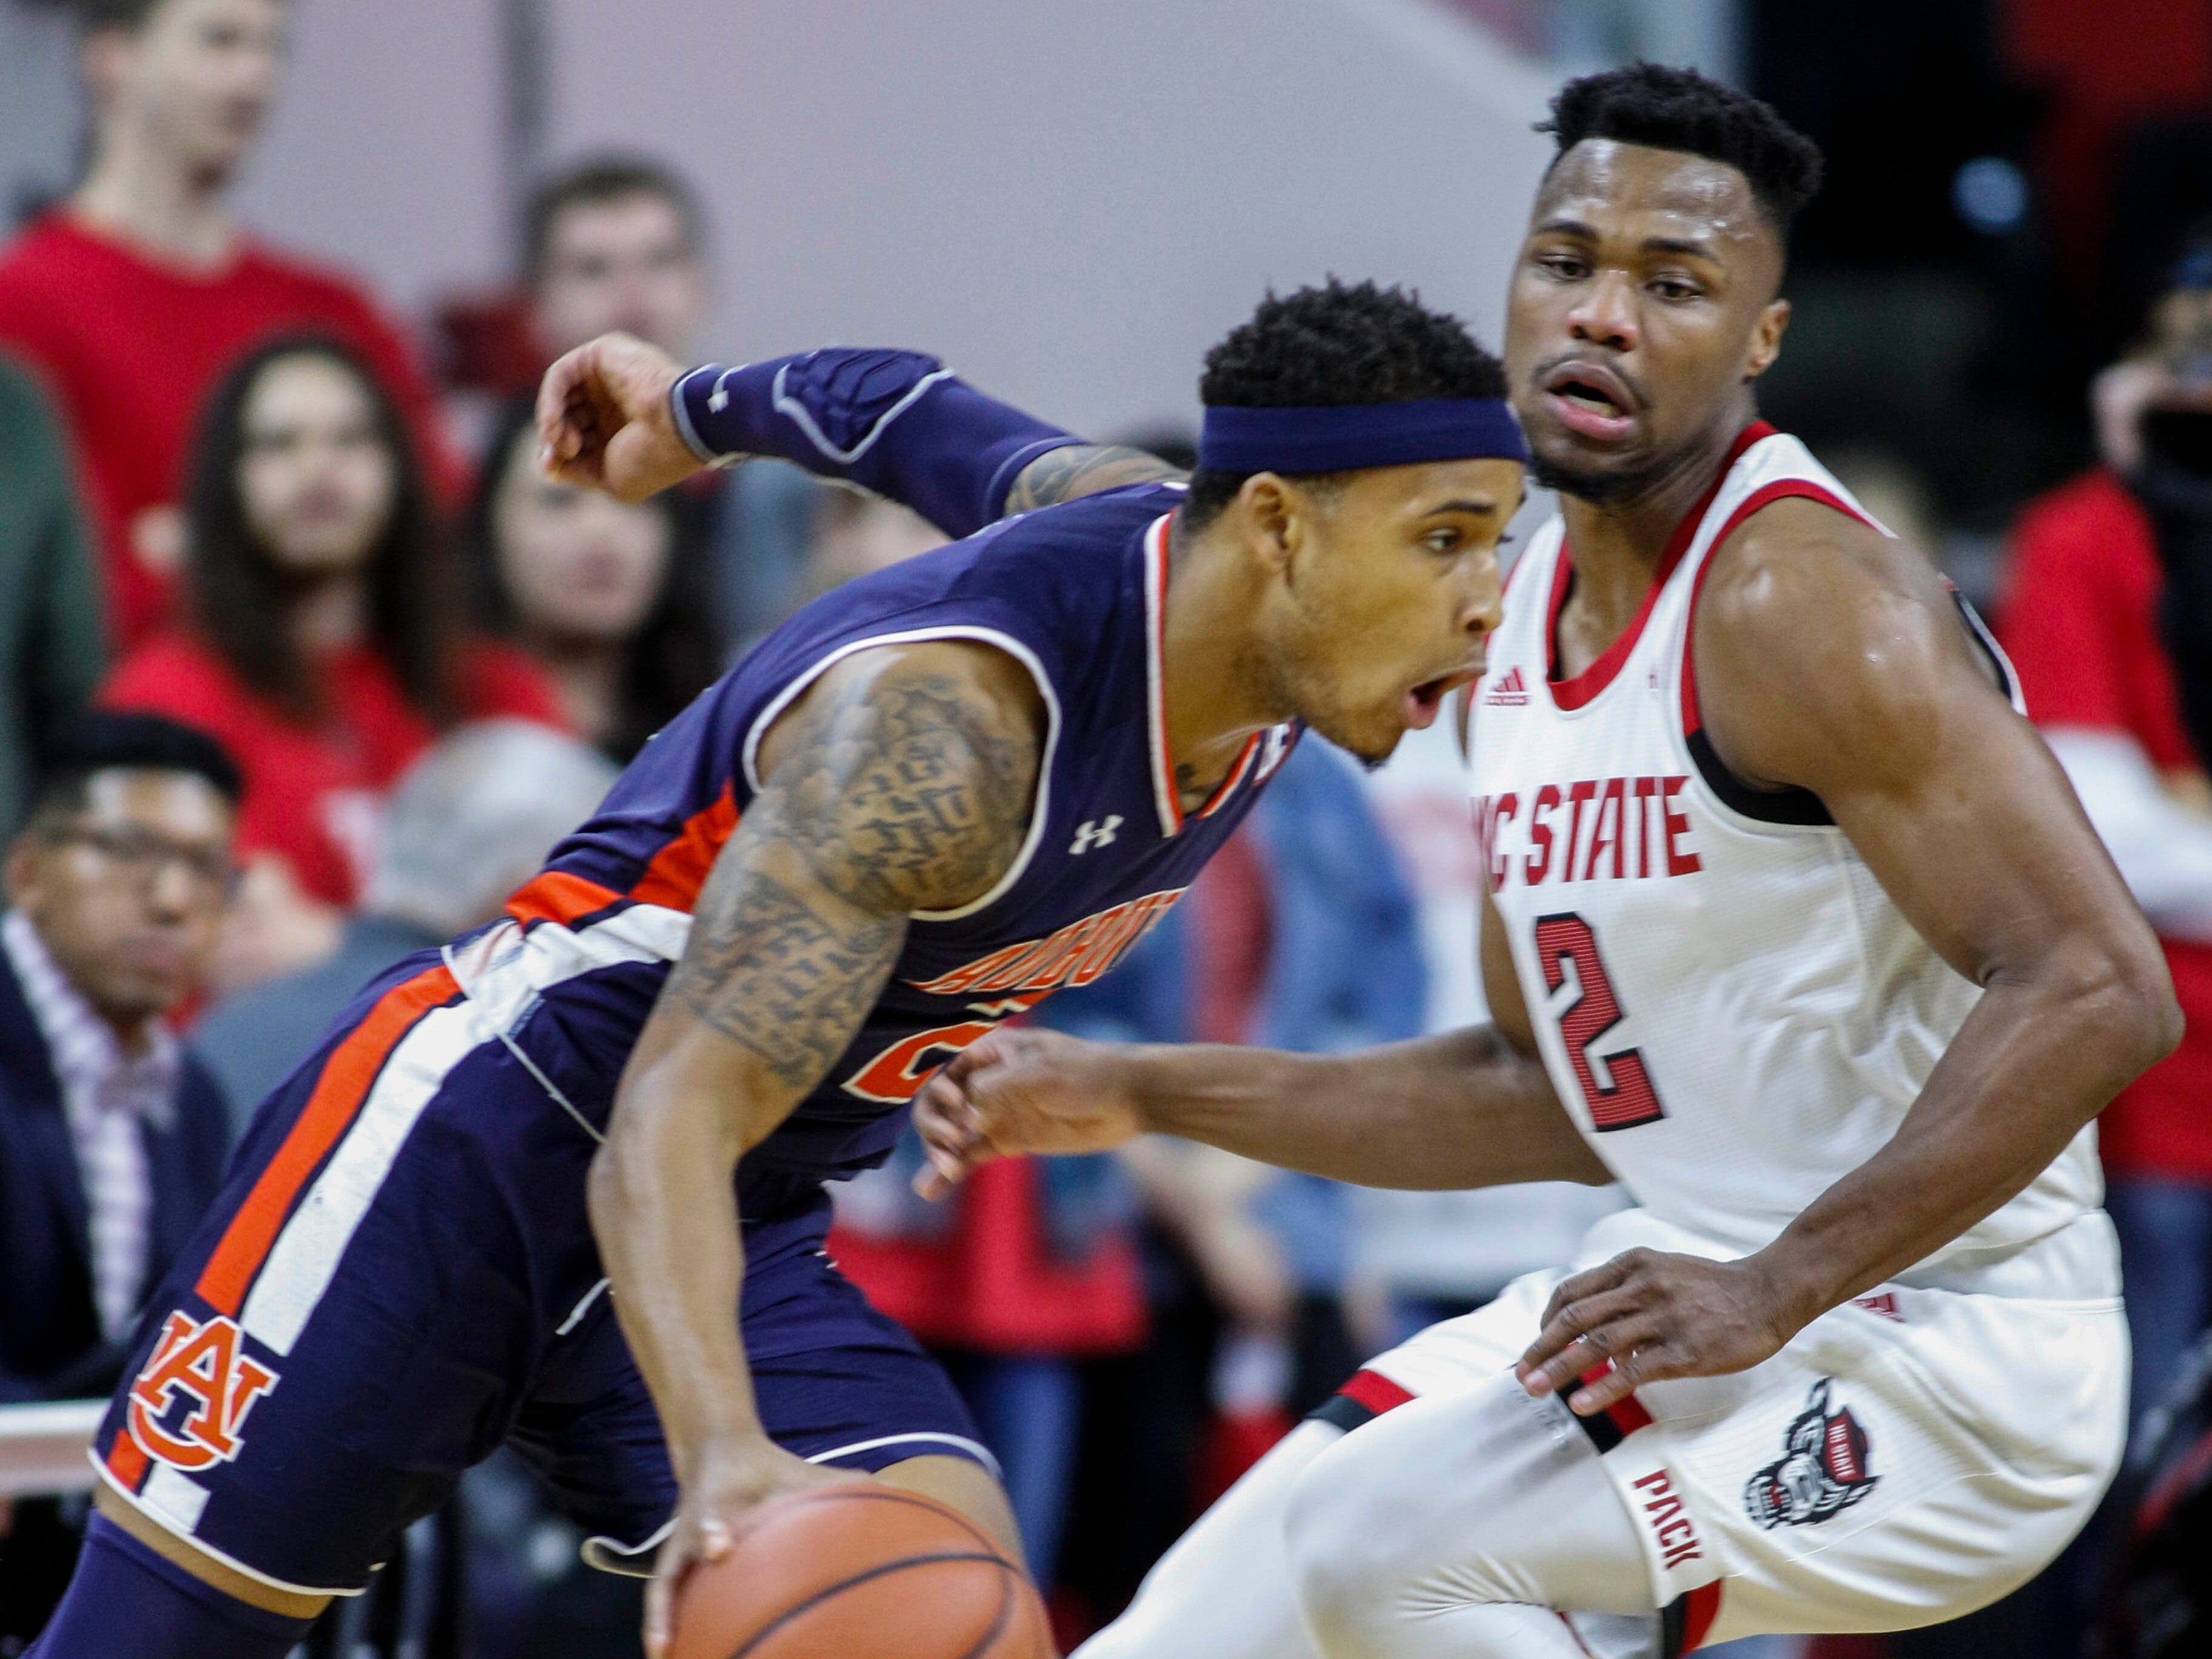 Dec 19, 2018; Raleigh, NC, USA; Auburn Tigers guard Bryce Brown (left) drives around North Carolina State Wolfpack guard Torin Dorn in the first half at PNC Arena. Mandatory Credit: Nell Redmond-USA TODAY Sports